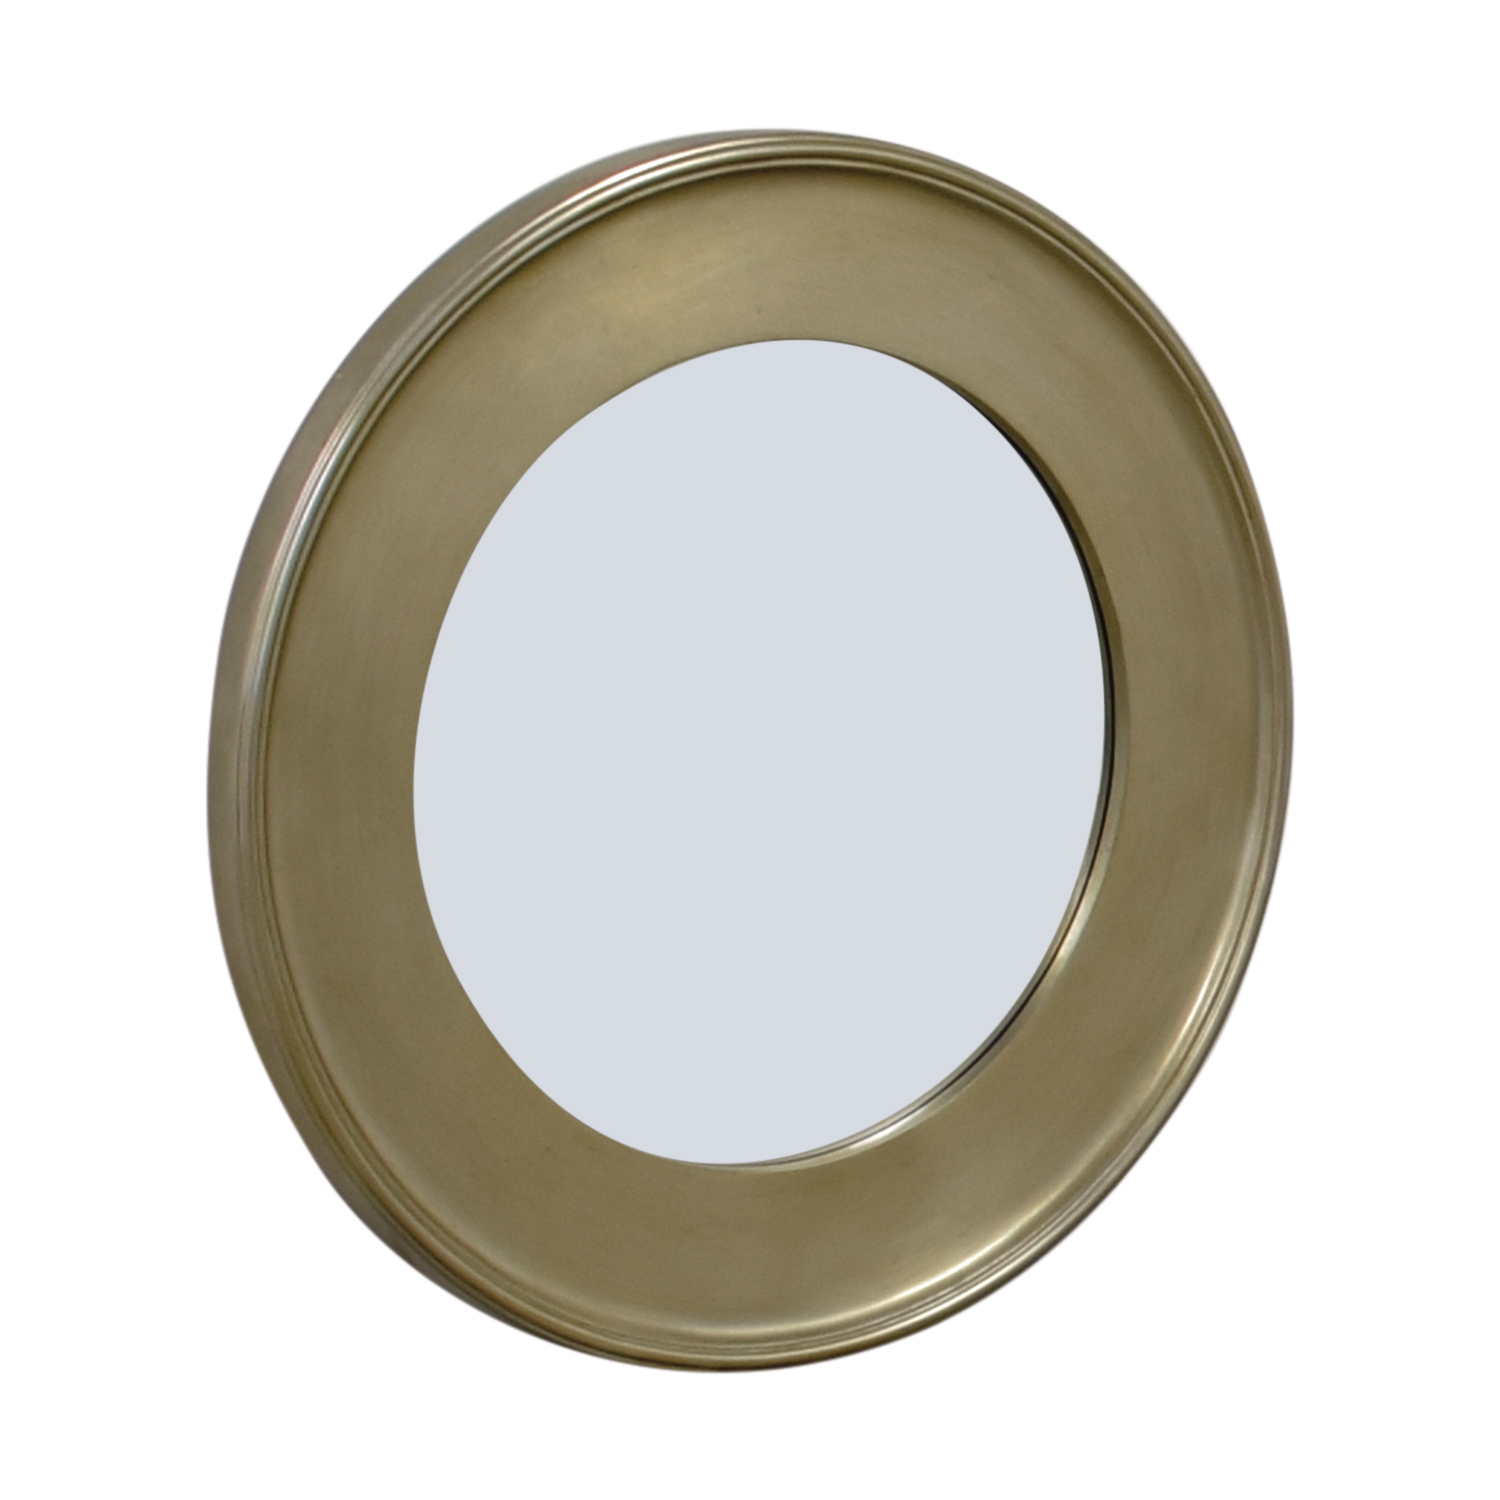 Bassett Round Silver Leaf Wall Mirror / Decor